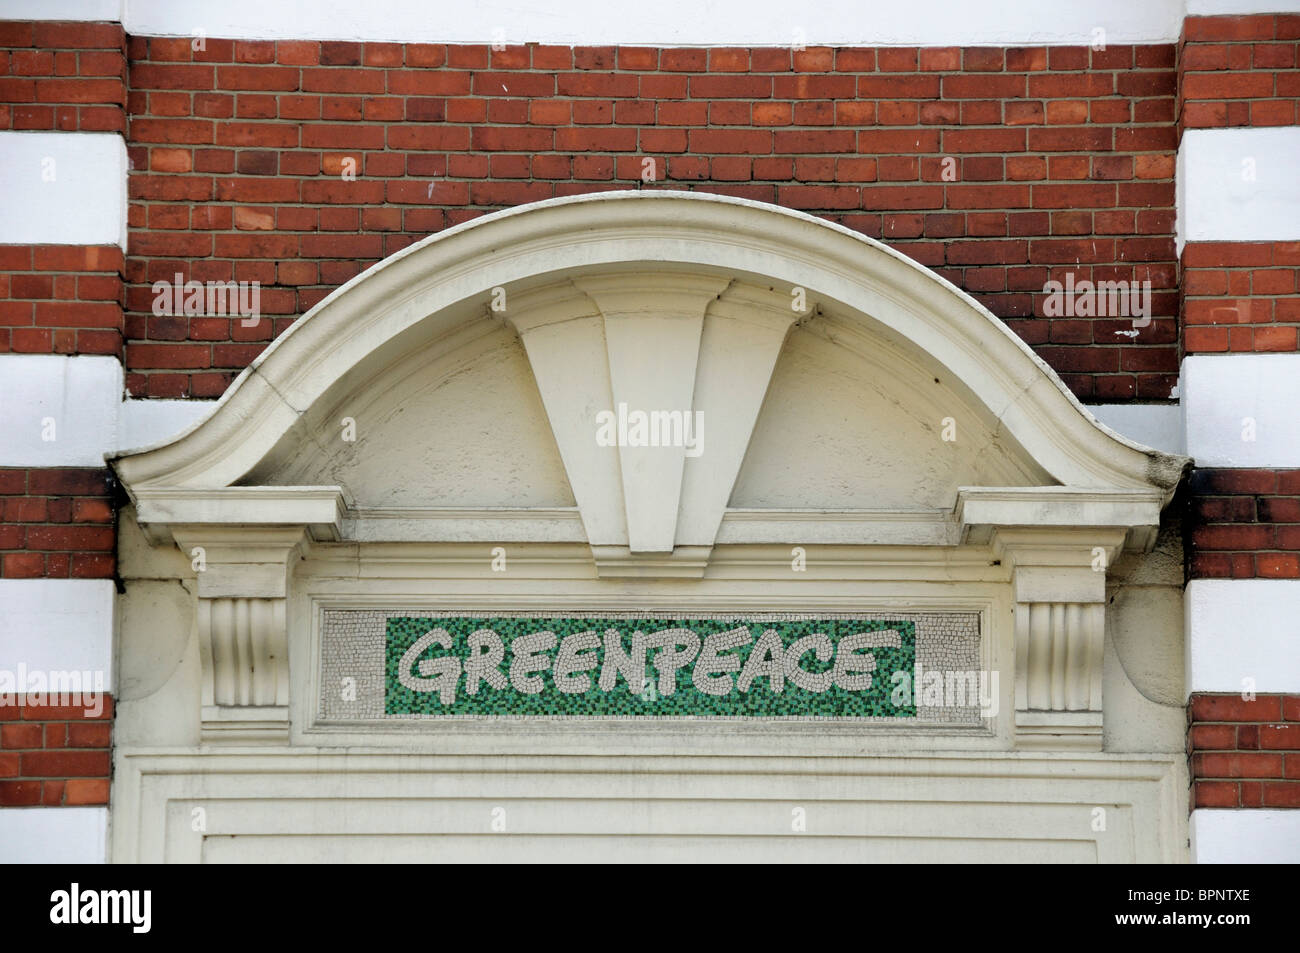 Sign above Greenpeace's office, Canonbury London Borough of Islington England Britain UK - Stock Image